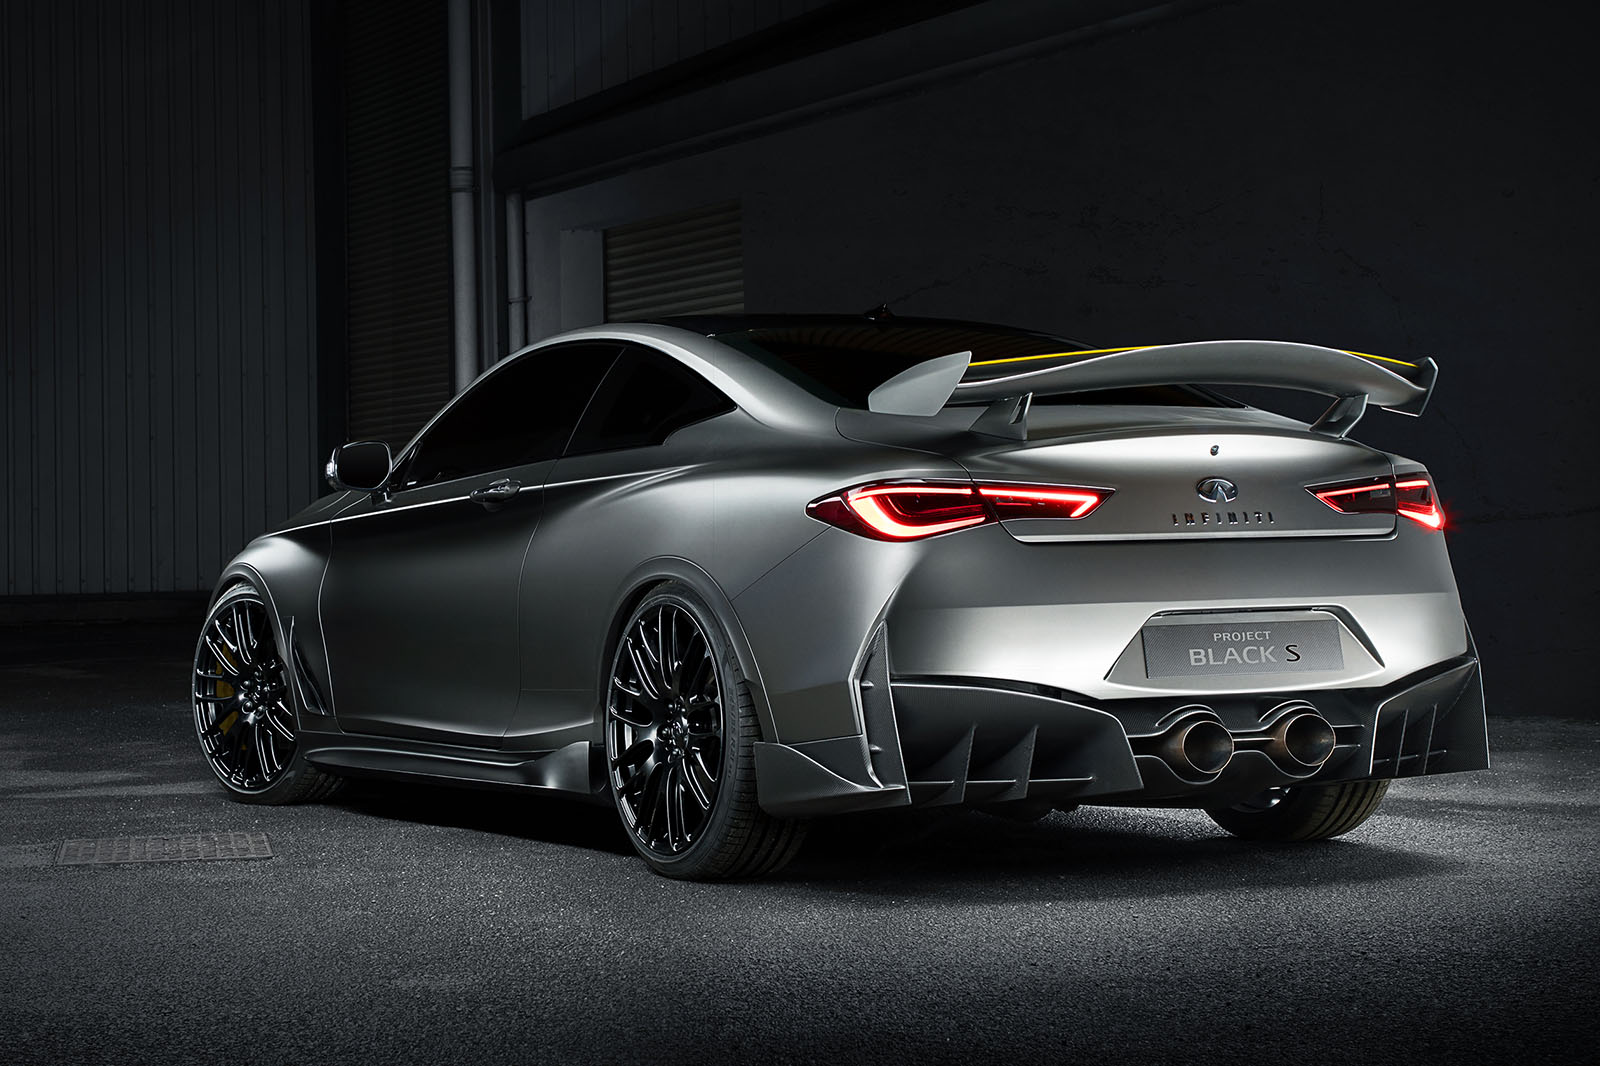 Infiniti hints at 'Black S' performance brand with wild Q60 concept class=